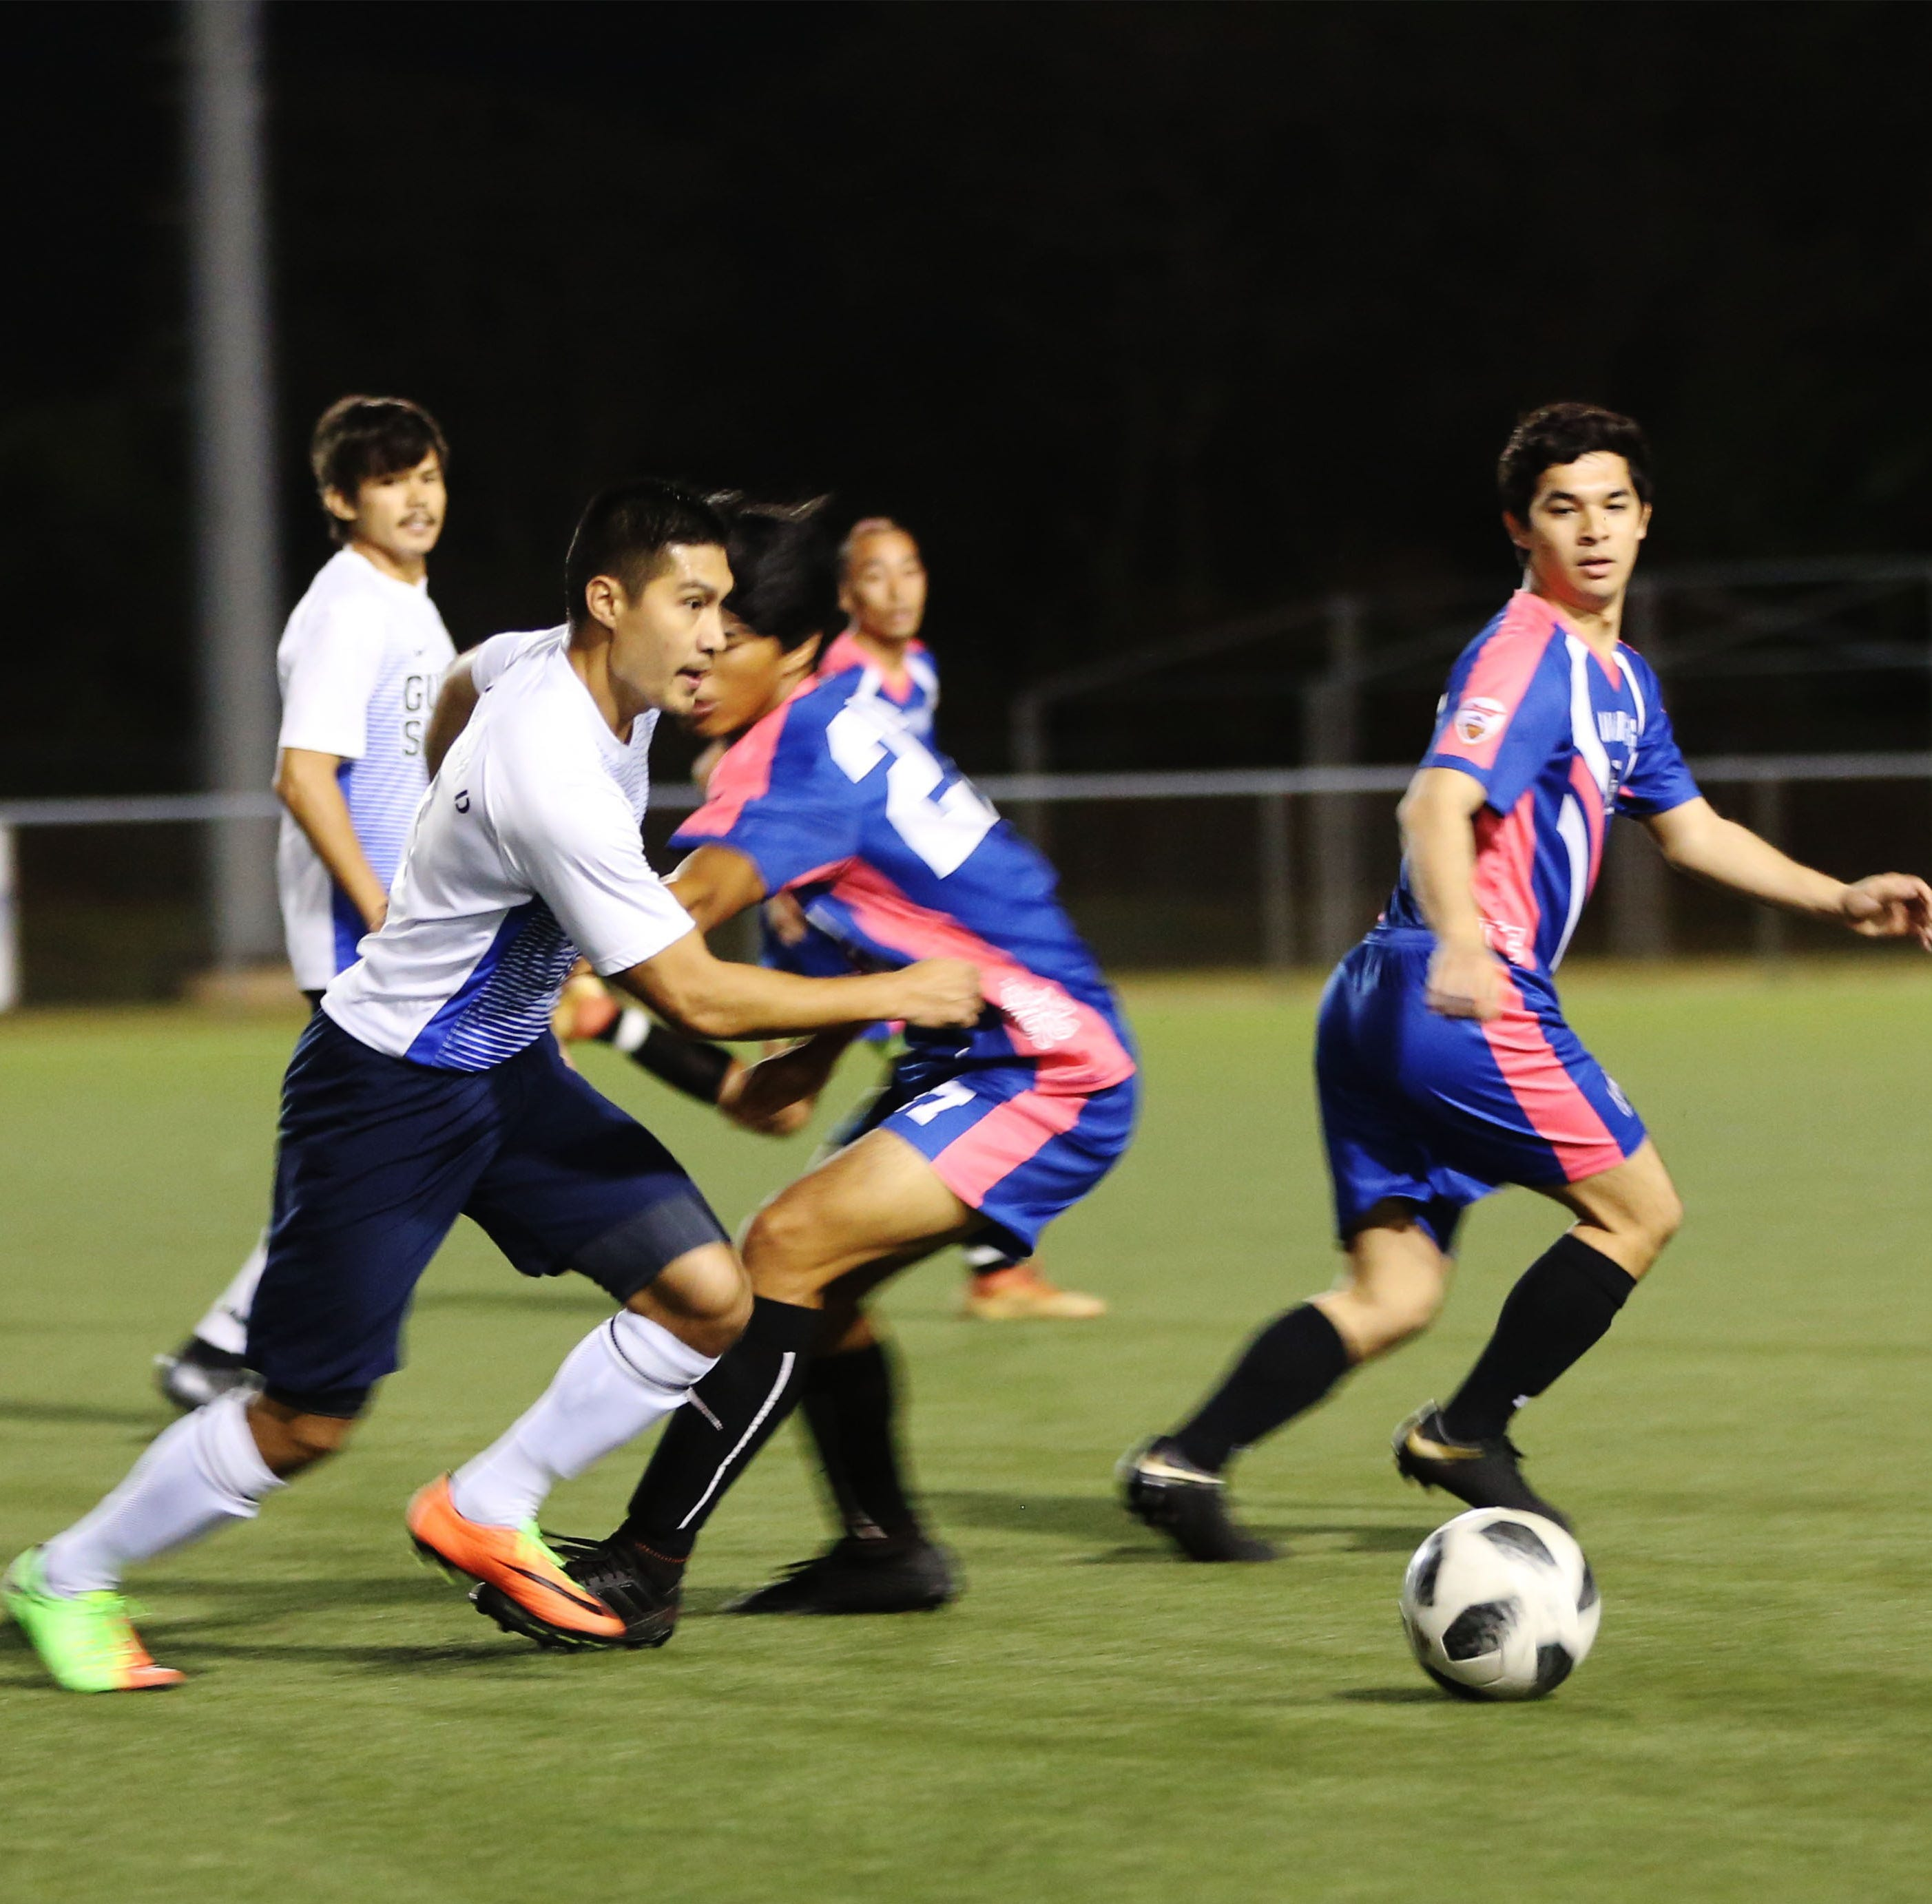 LOA Heat moves up to 4th spot in soccer league